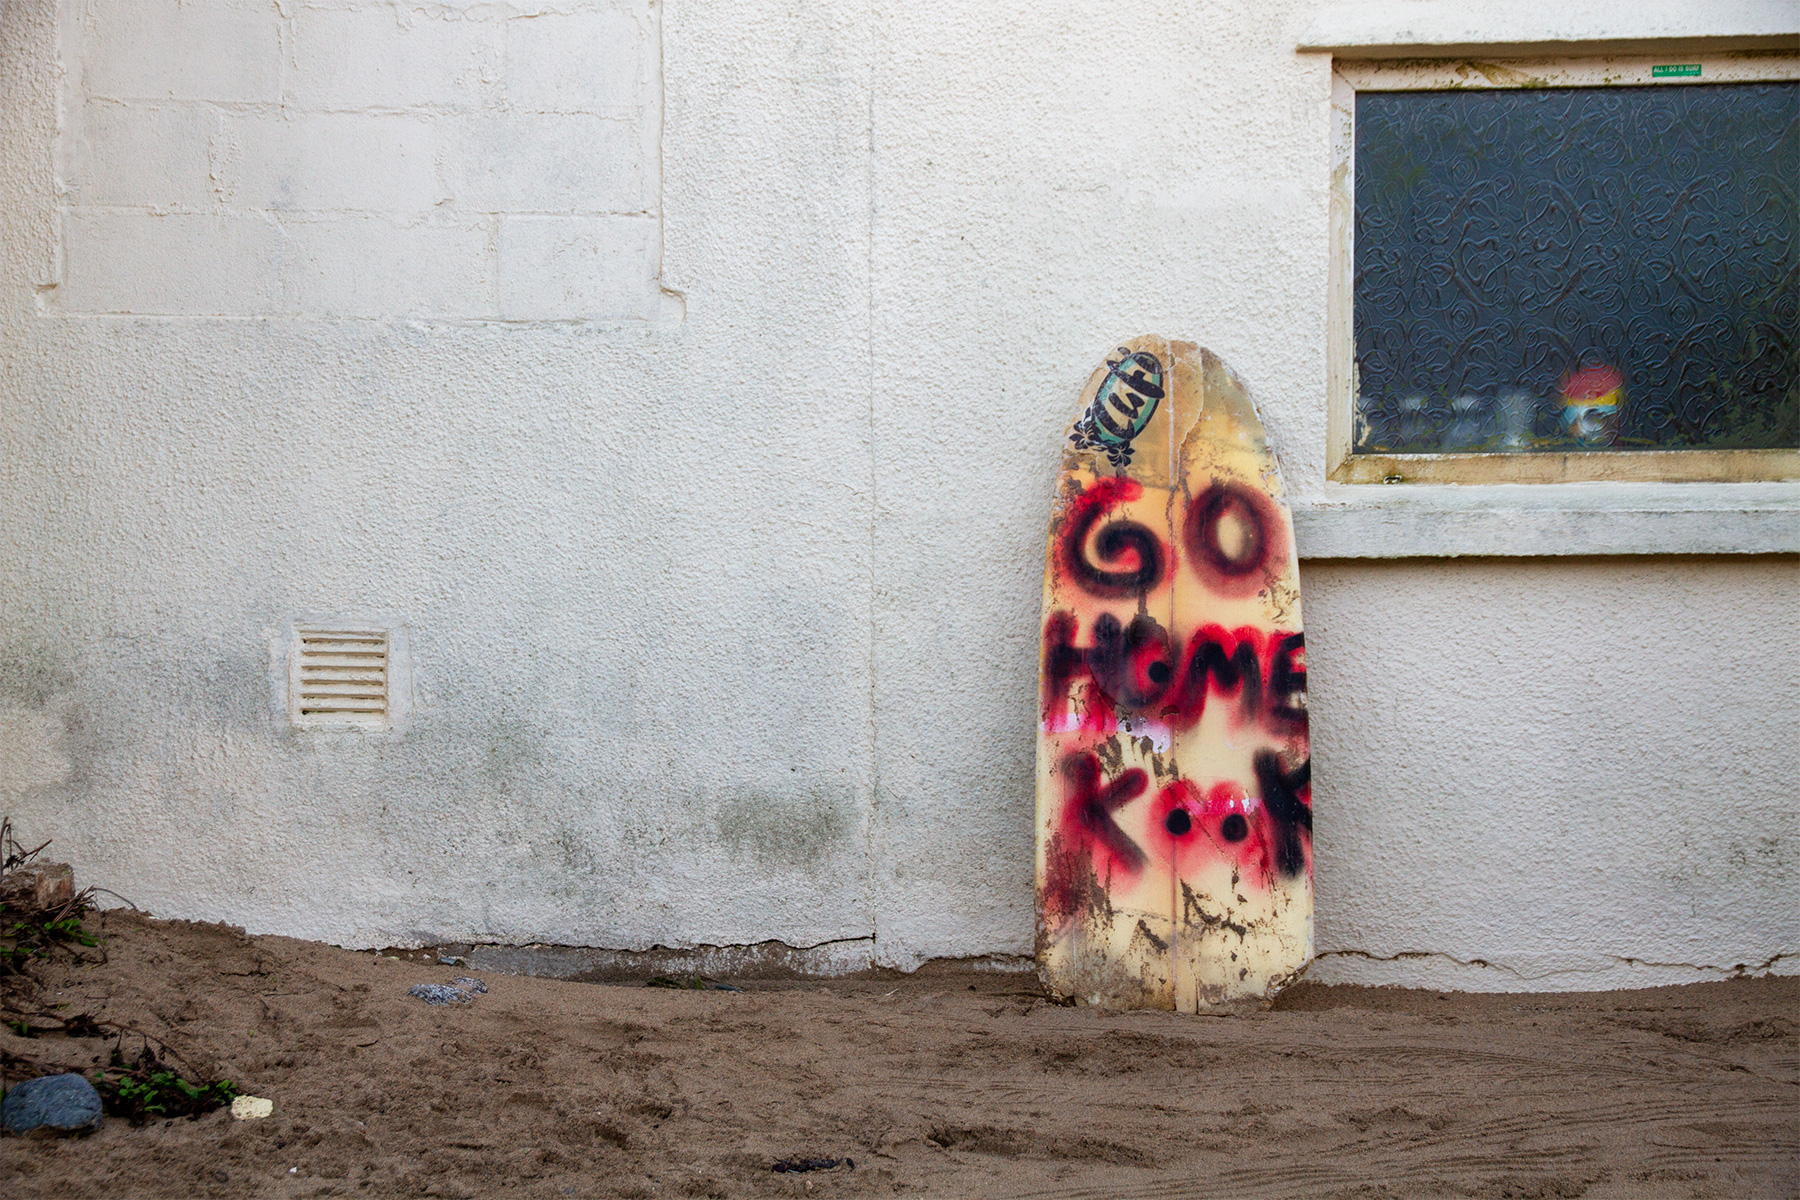 """broken surfboard with """"go home kook"""" localism graffiti spray painted on it leaning against a wall at the beach"""